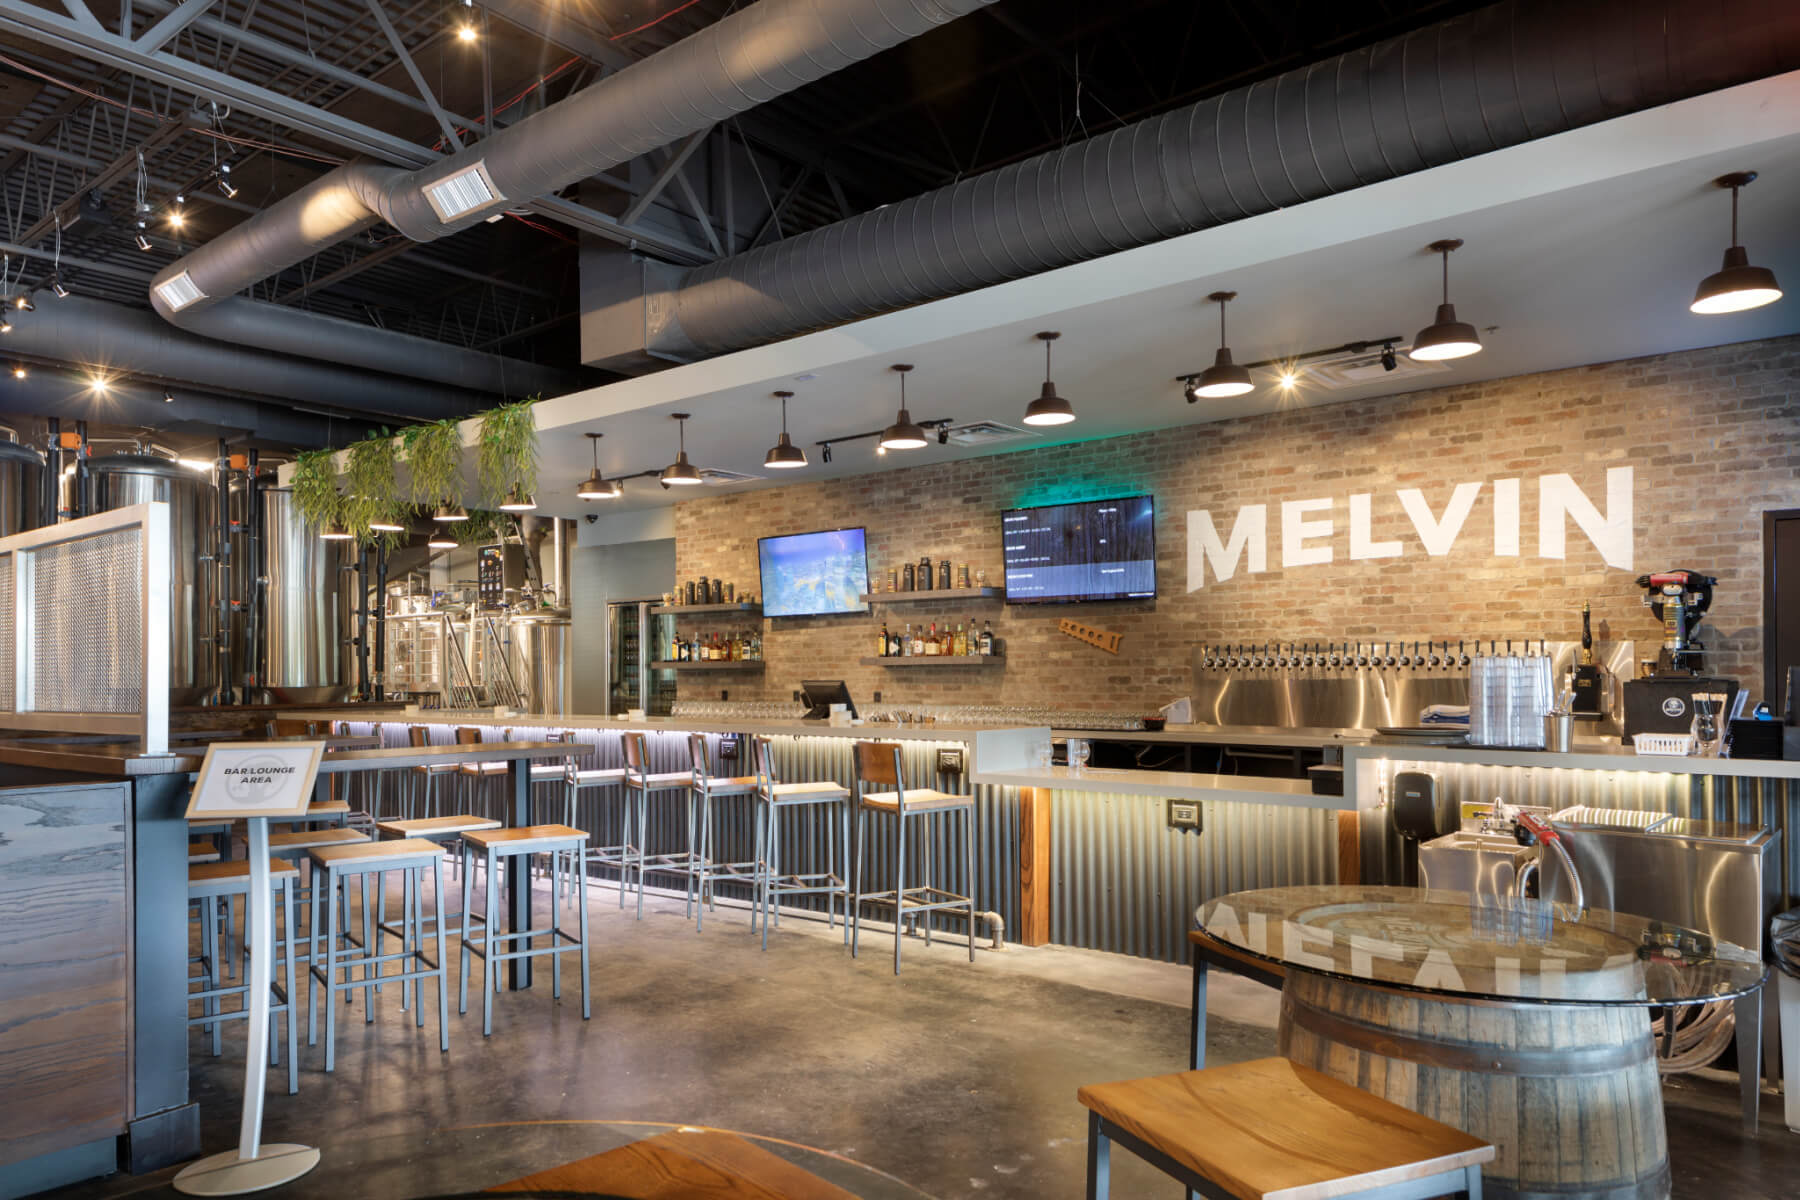 Knoebel Construction Completes Construction of Melvin Brewing in Eureka, MO